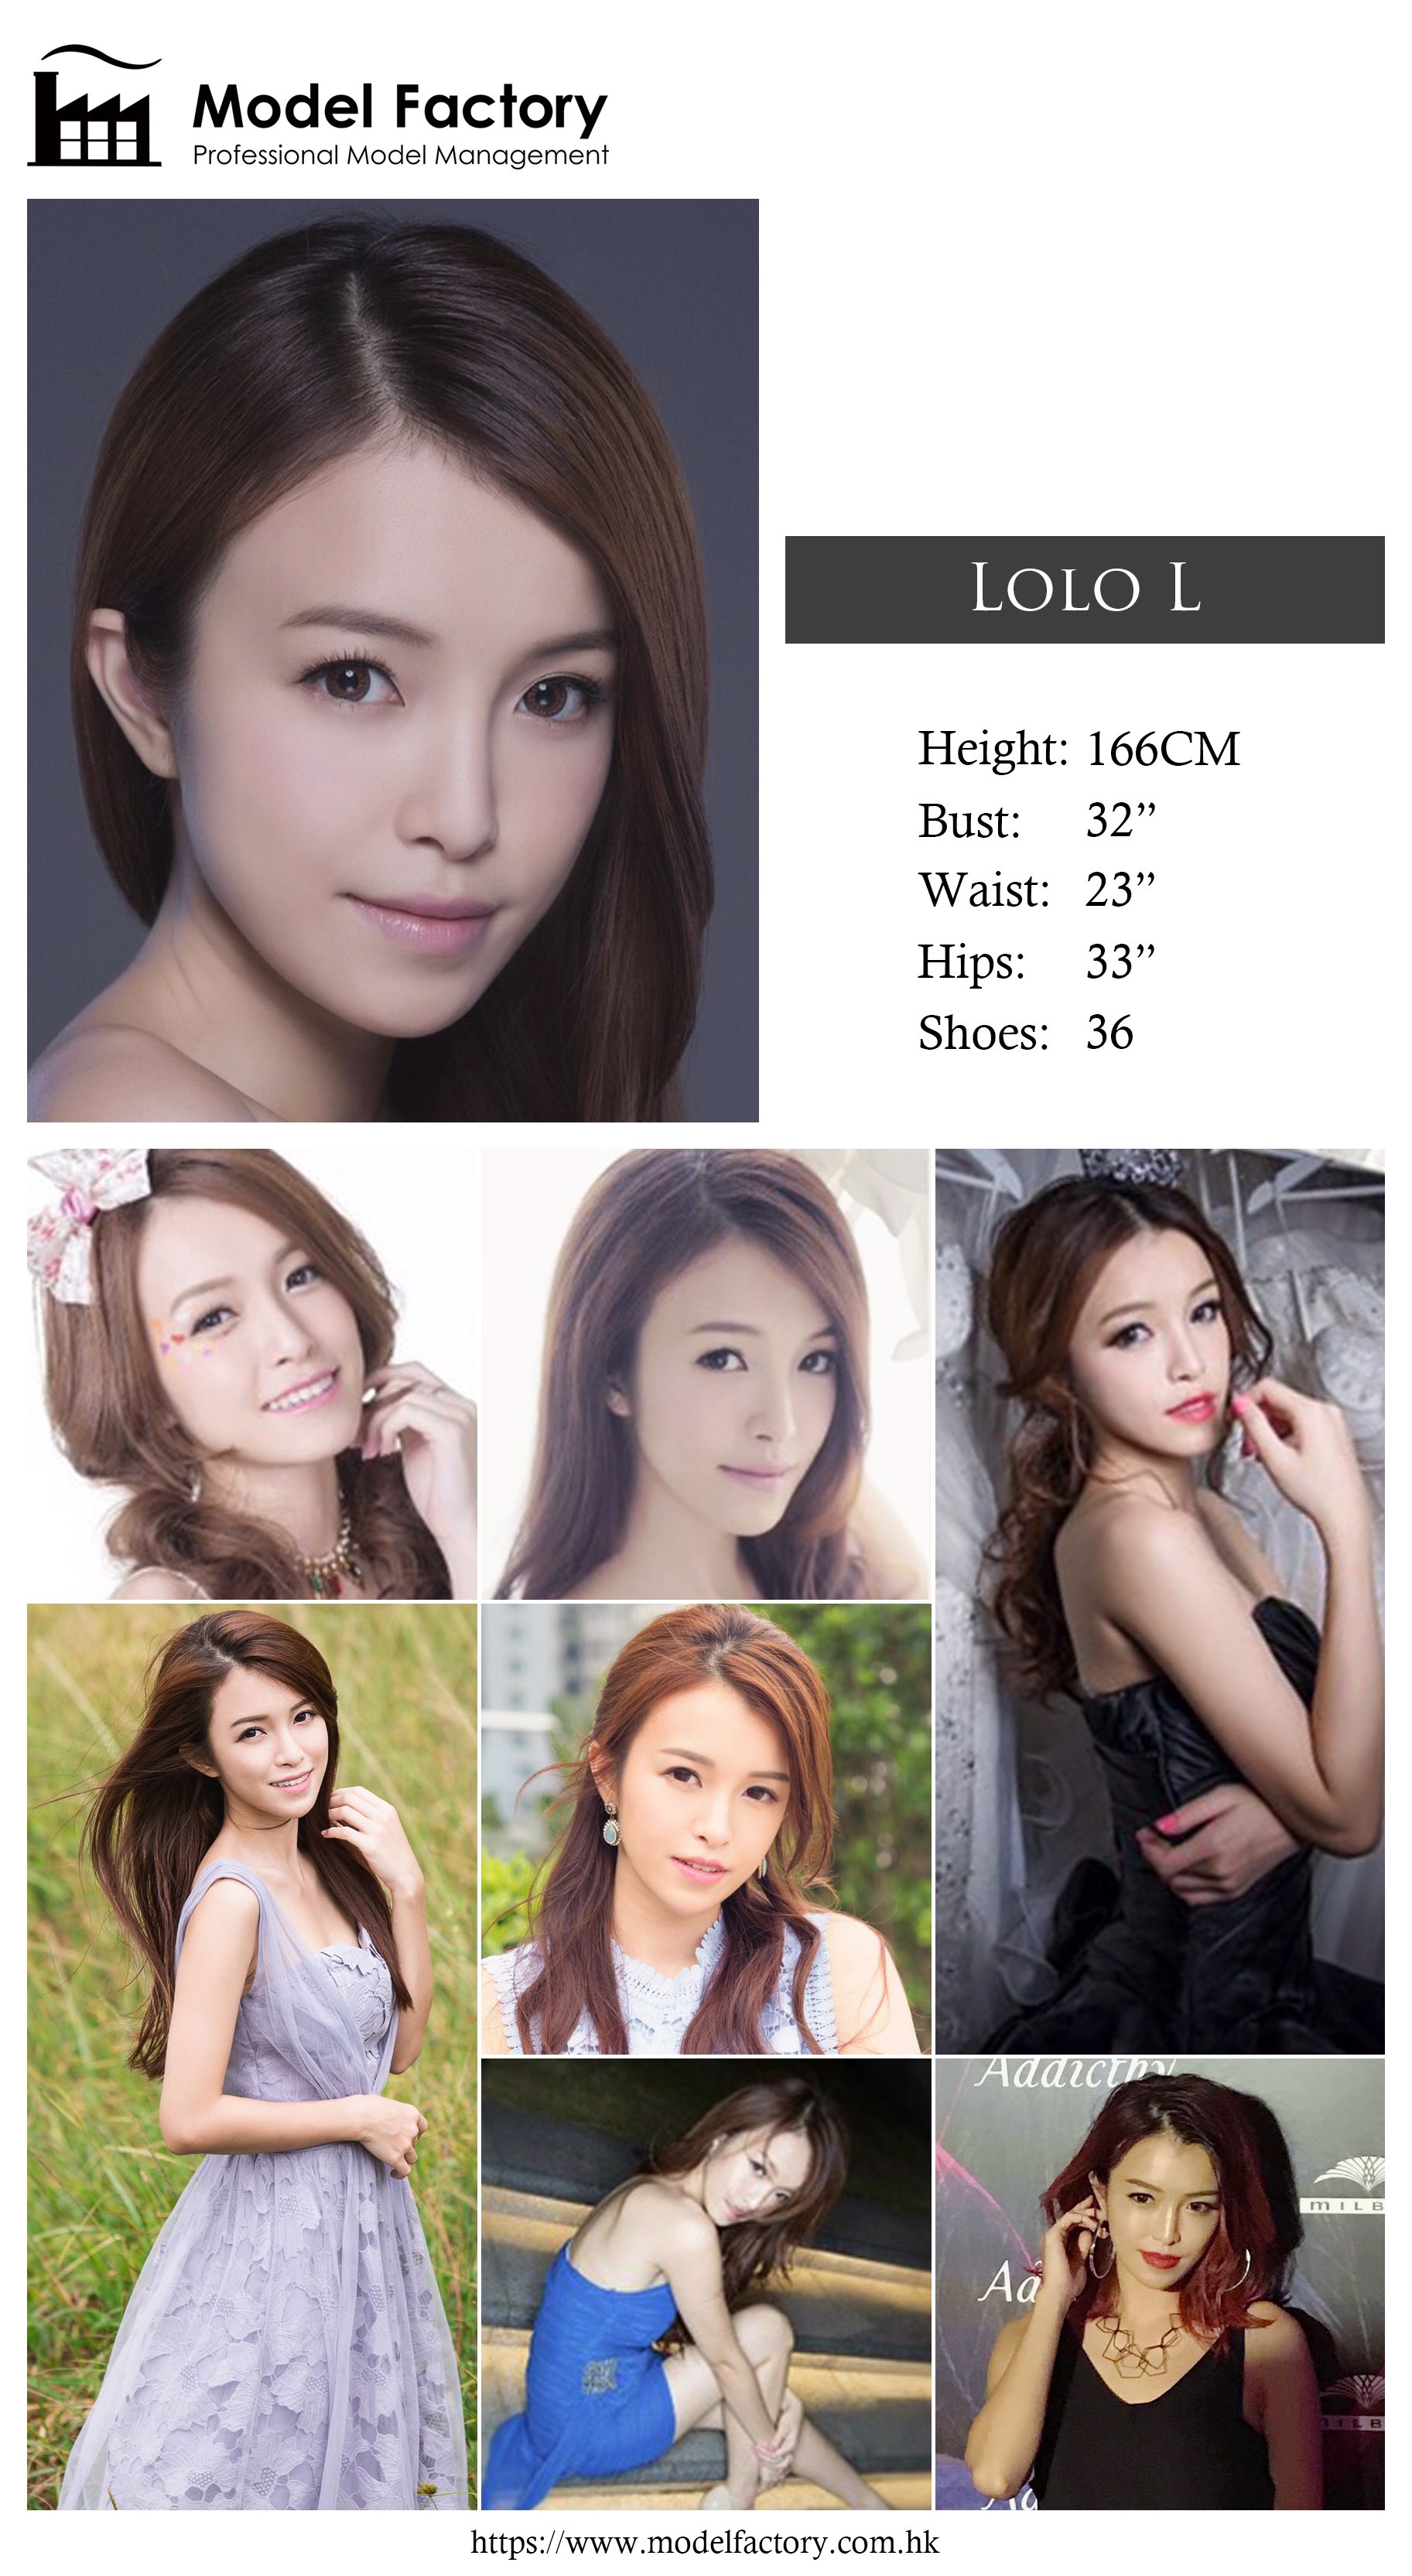 Model Factory Hong Kong Female Model LoloL